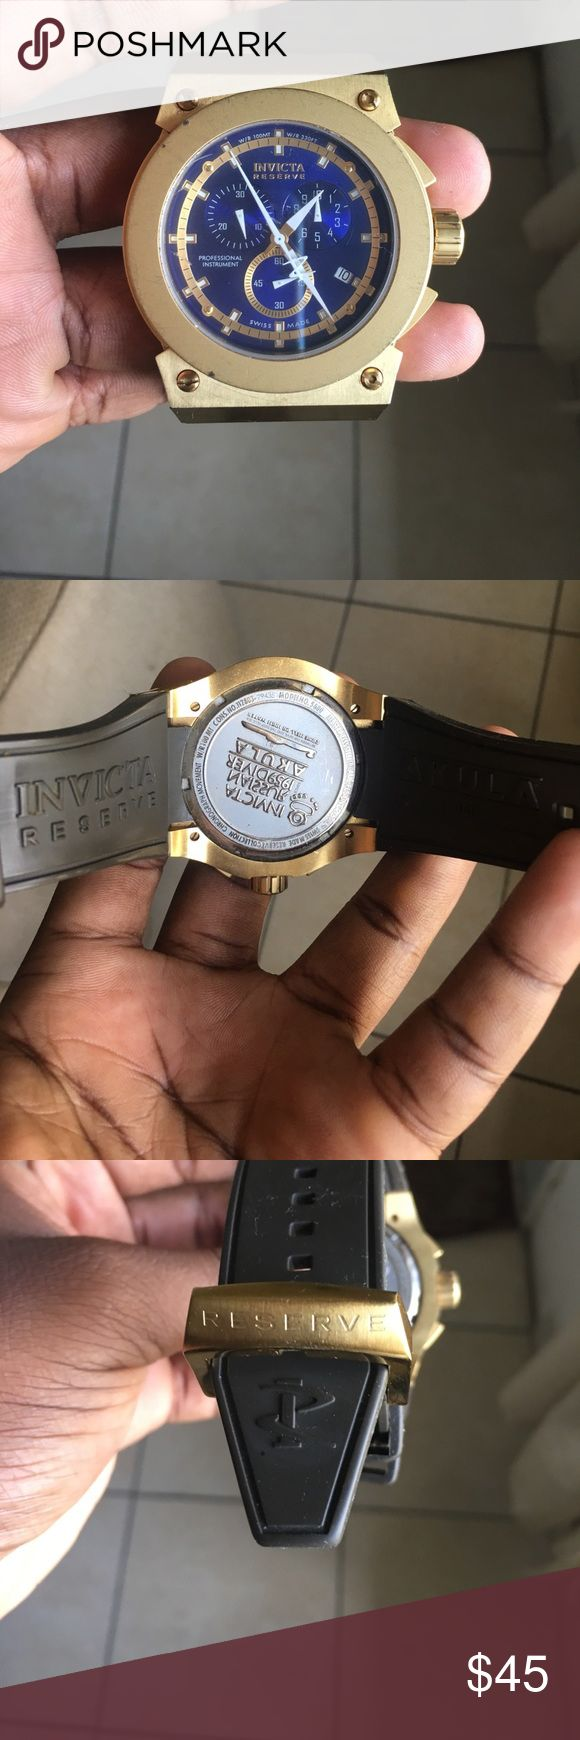 INVICTA RESERVE WATCH PROFESSIONAL INSTRUMENT Like new INVICTA watch only worn twice, blue interface, Swiss made flame-fusion crystal W/R 100 MT Invicta Accessories Watches